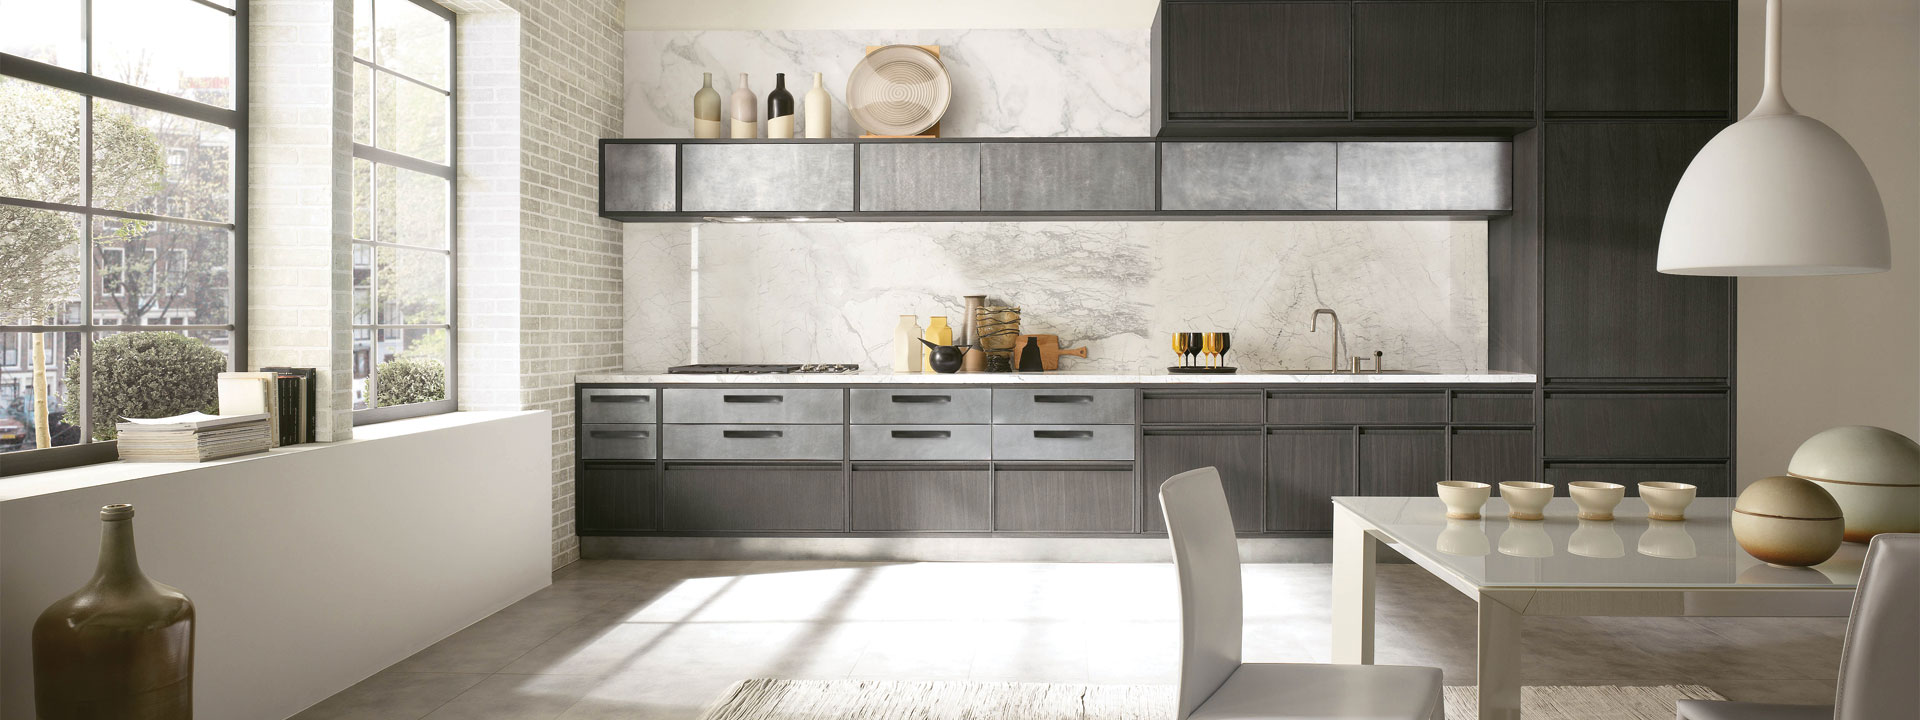 Italian Designed Transitional Kitchens